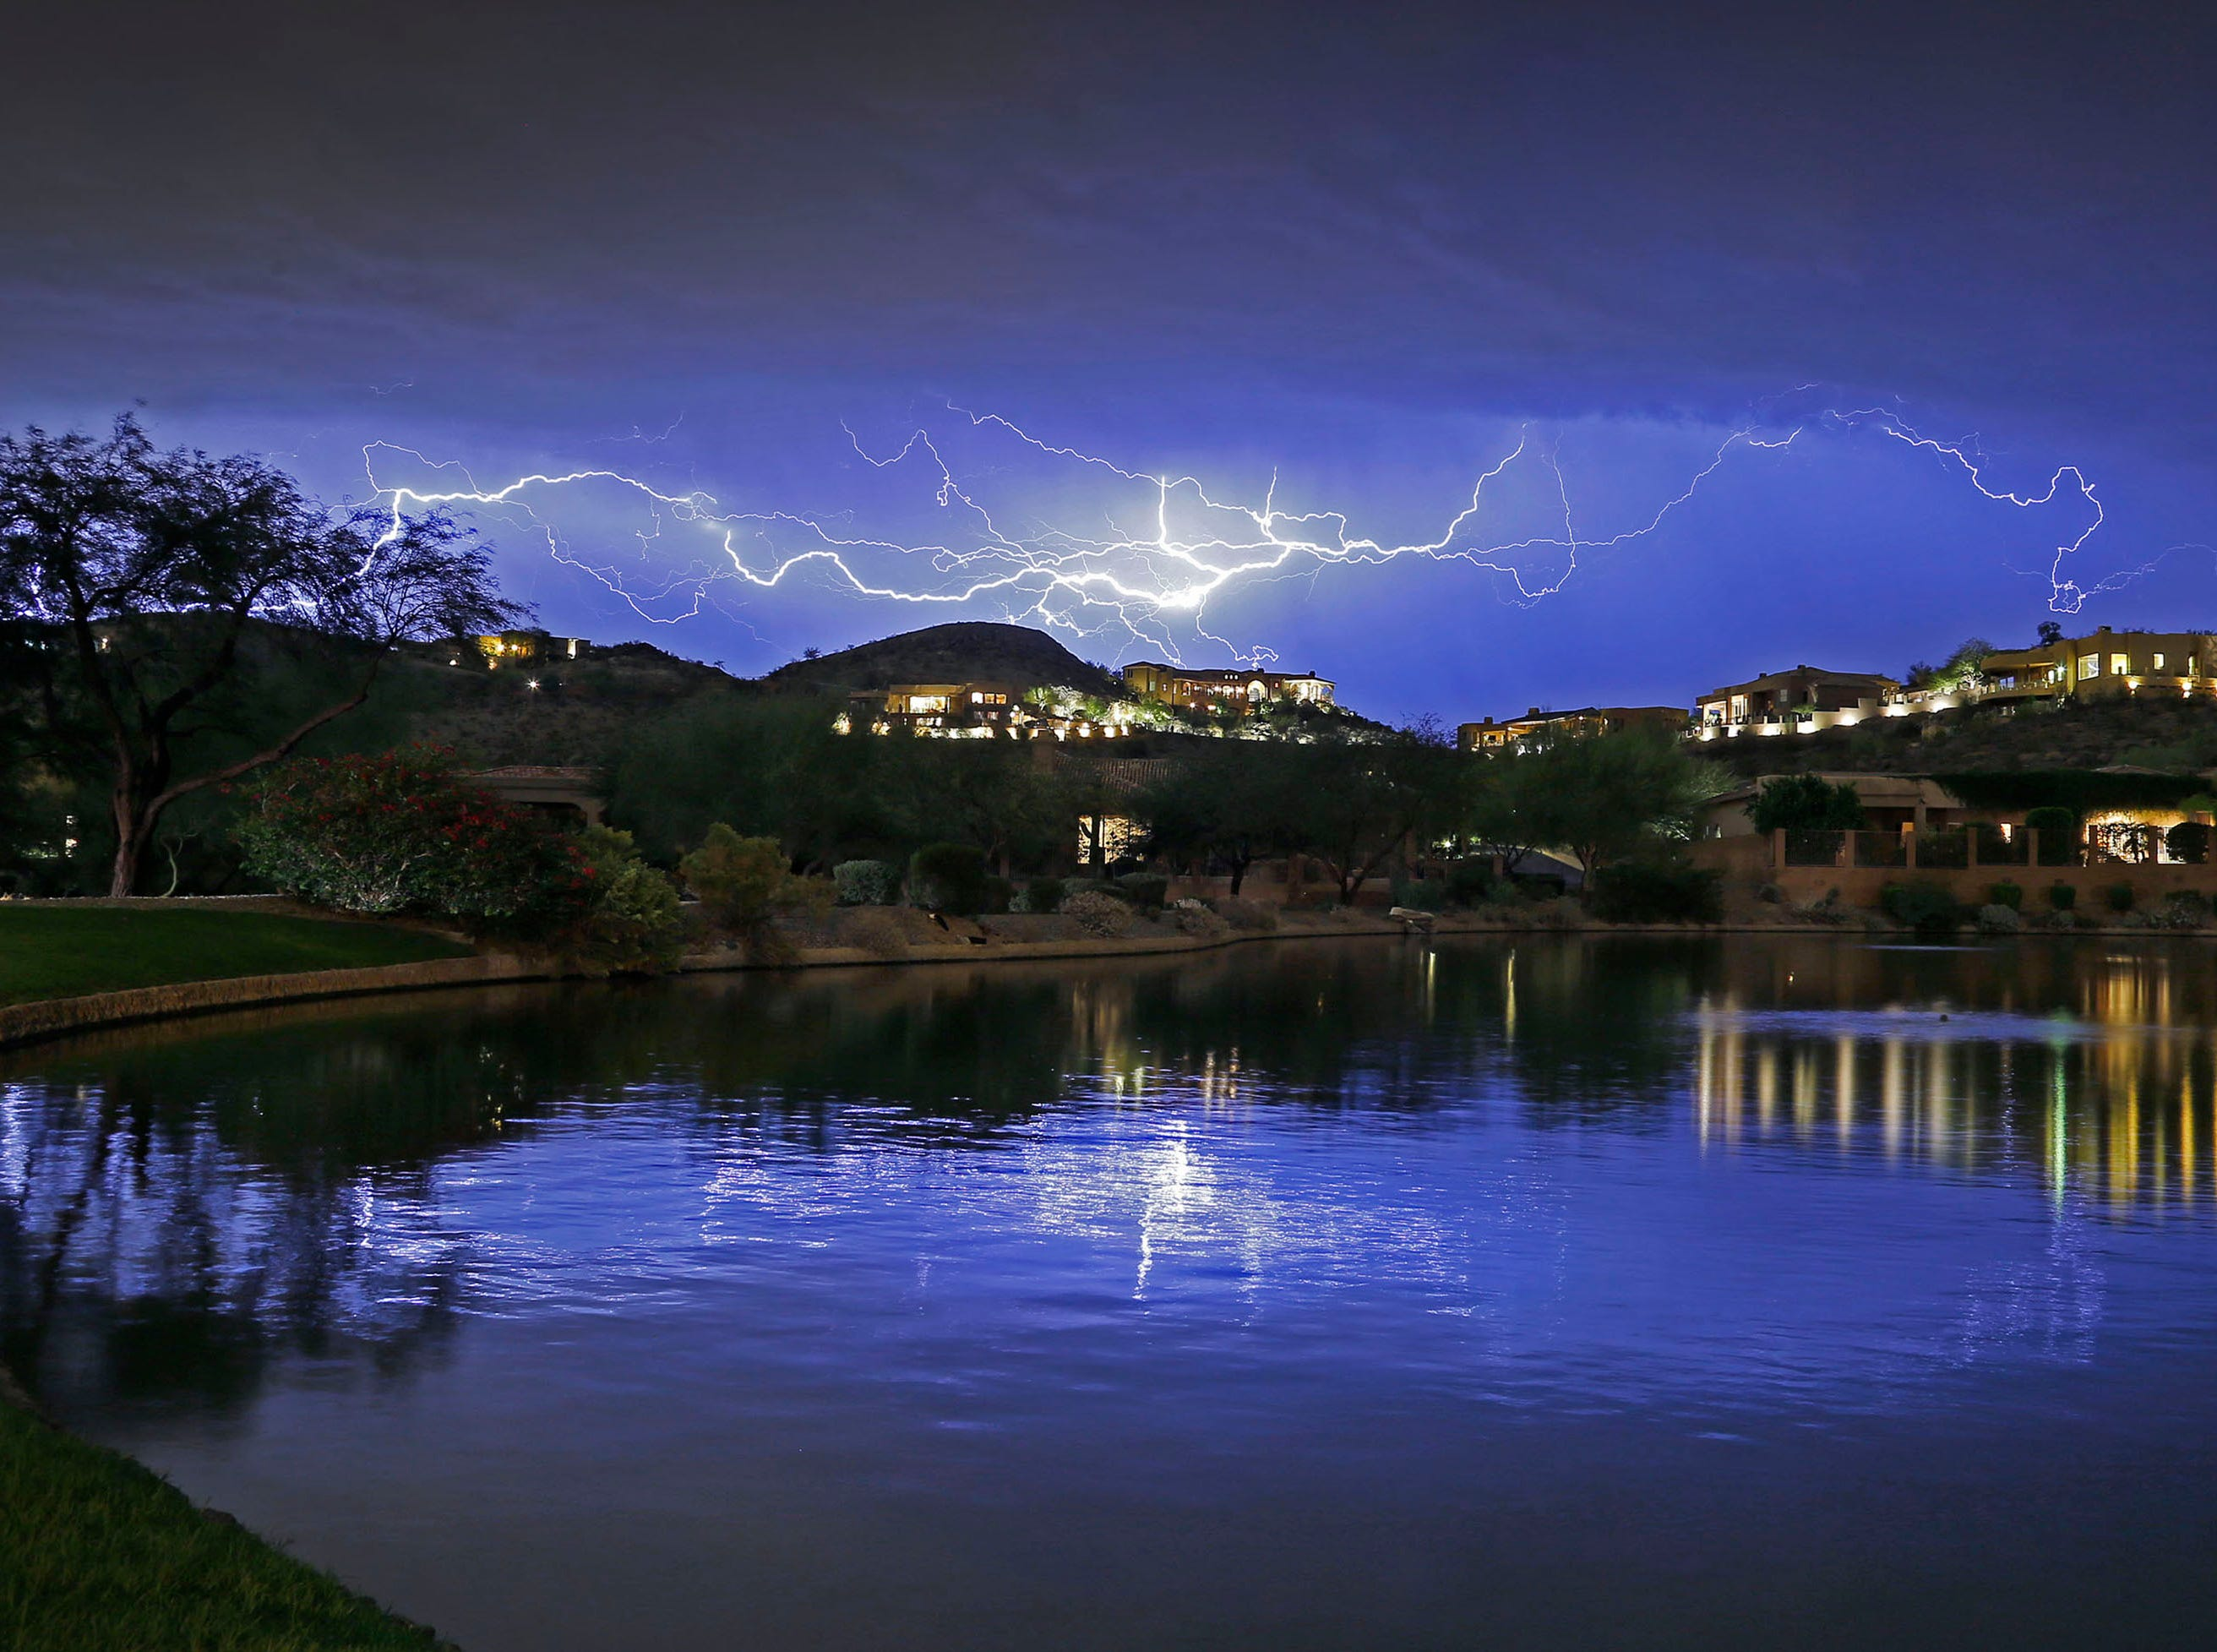 Intracloud Lightning streaks across the night sky as seen from Ahwatukee Thursday, Oct. 29, 2015 in Phoenix, Ariz.